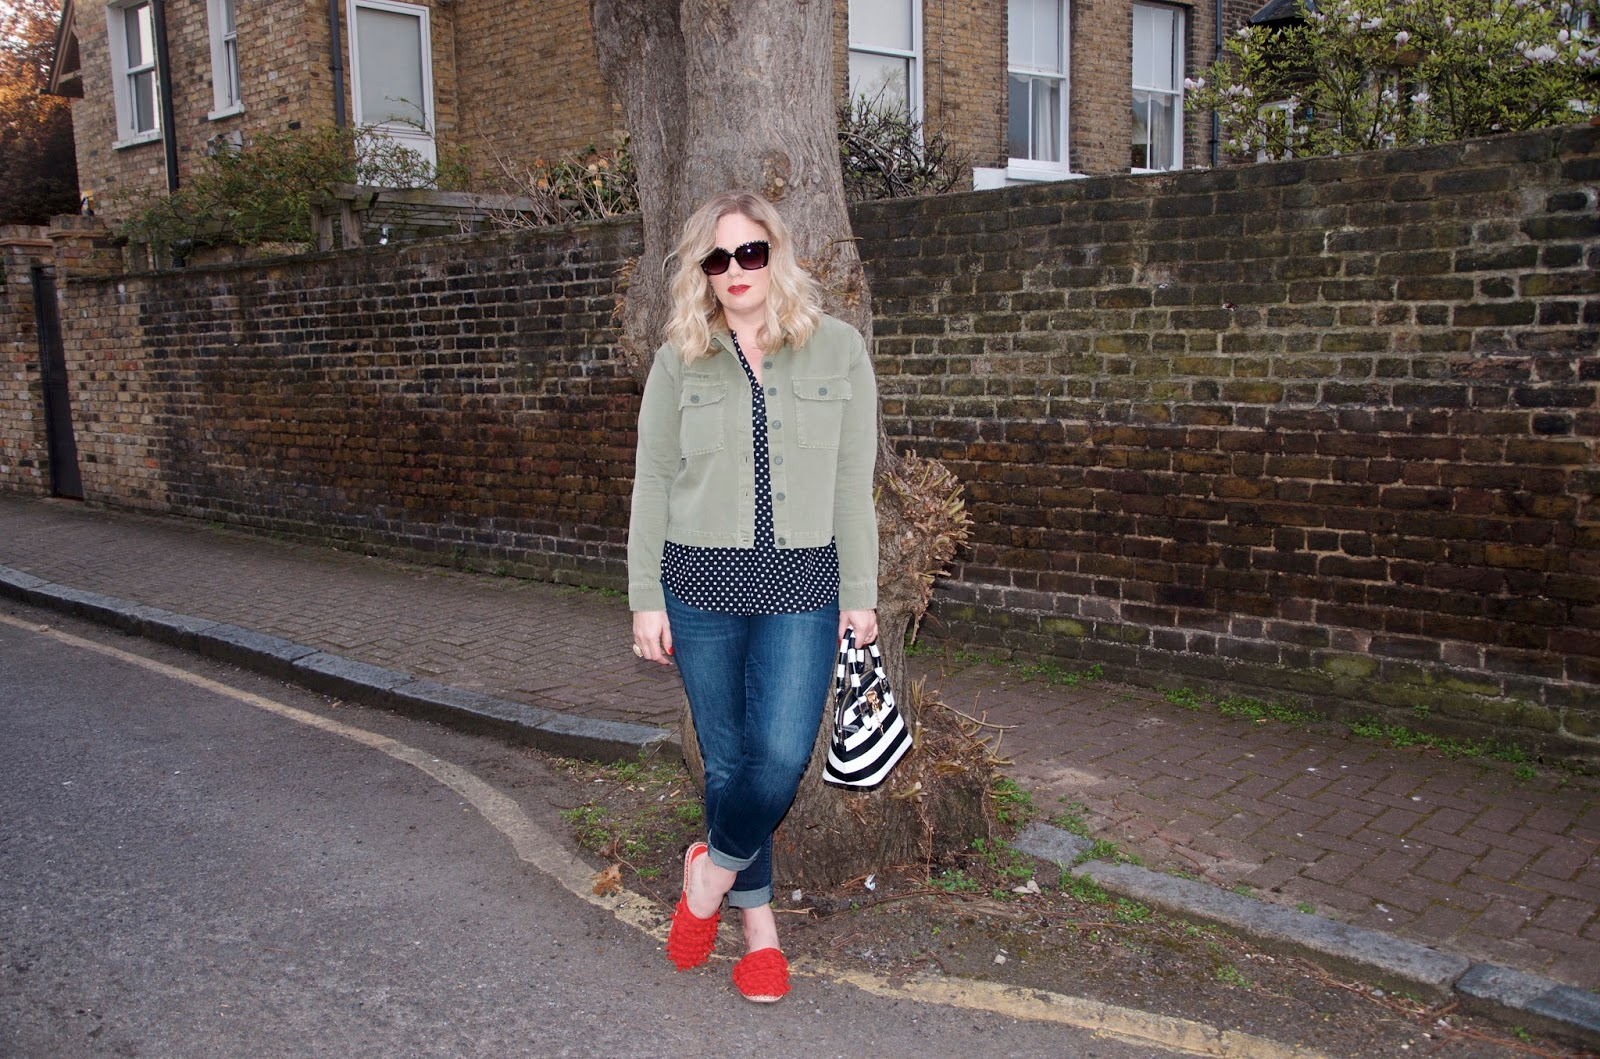 red mules, striped bag and green jacket